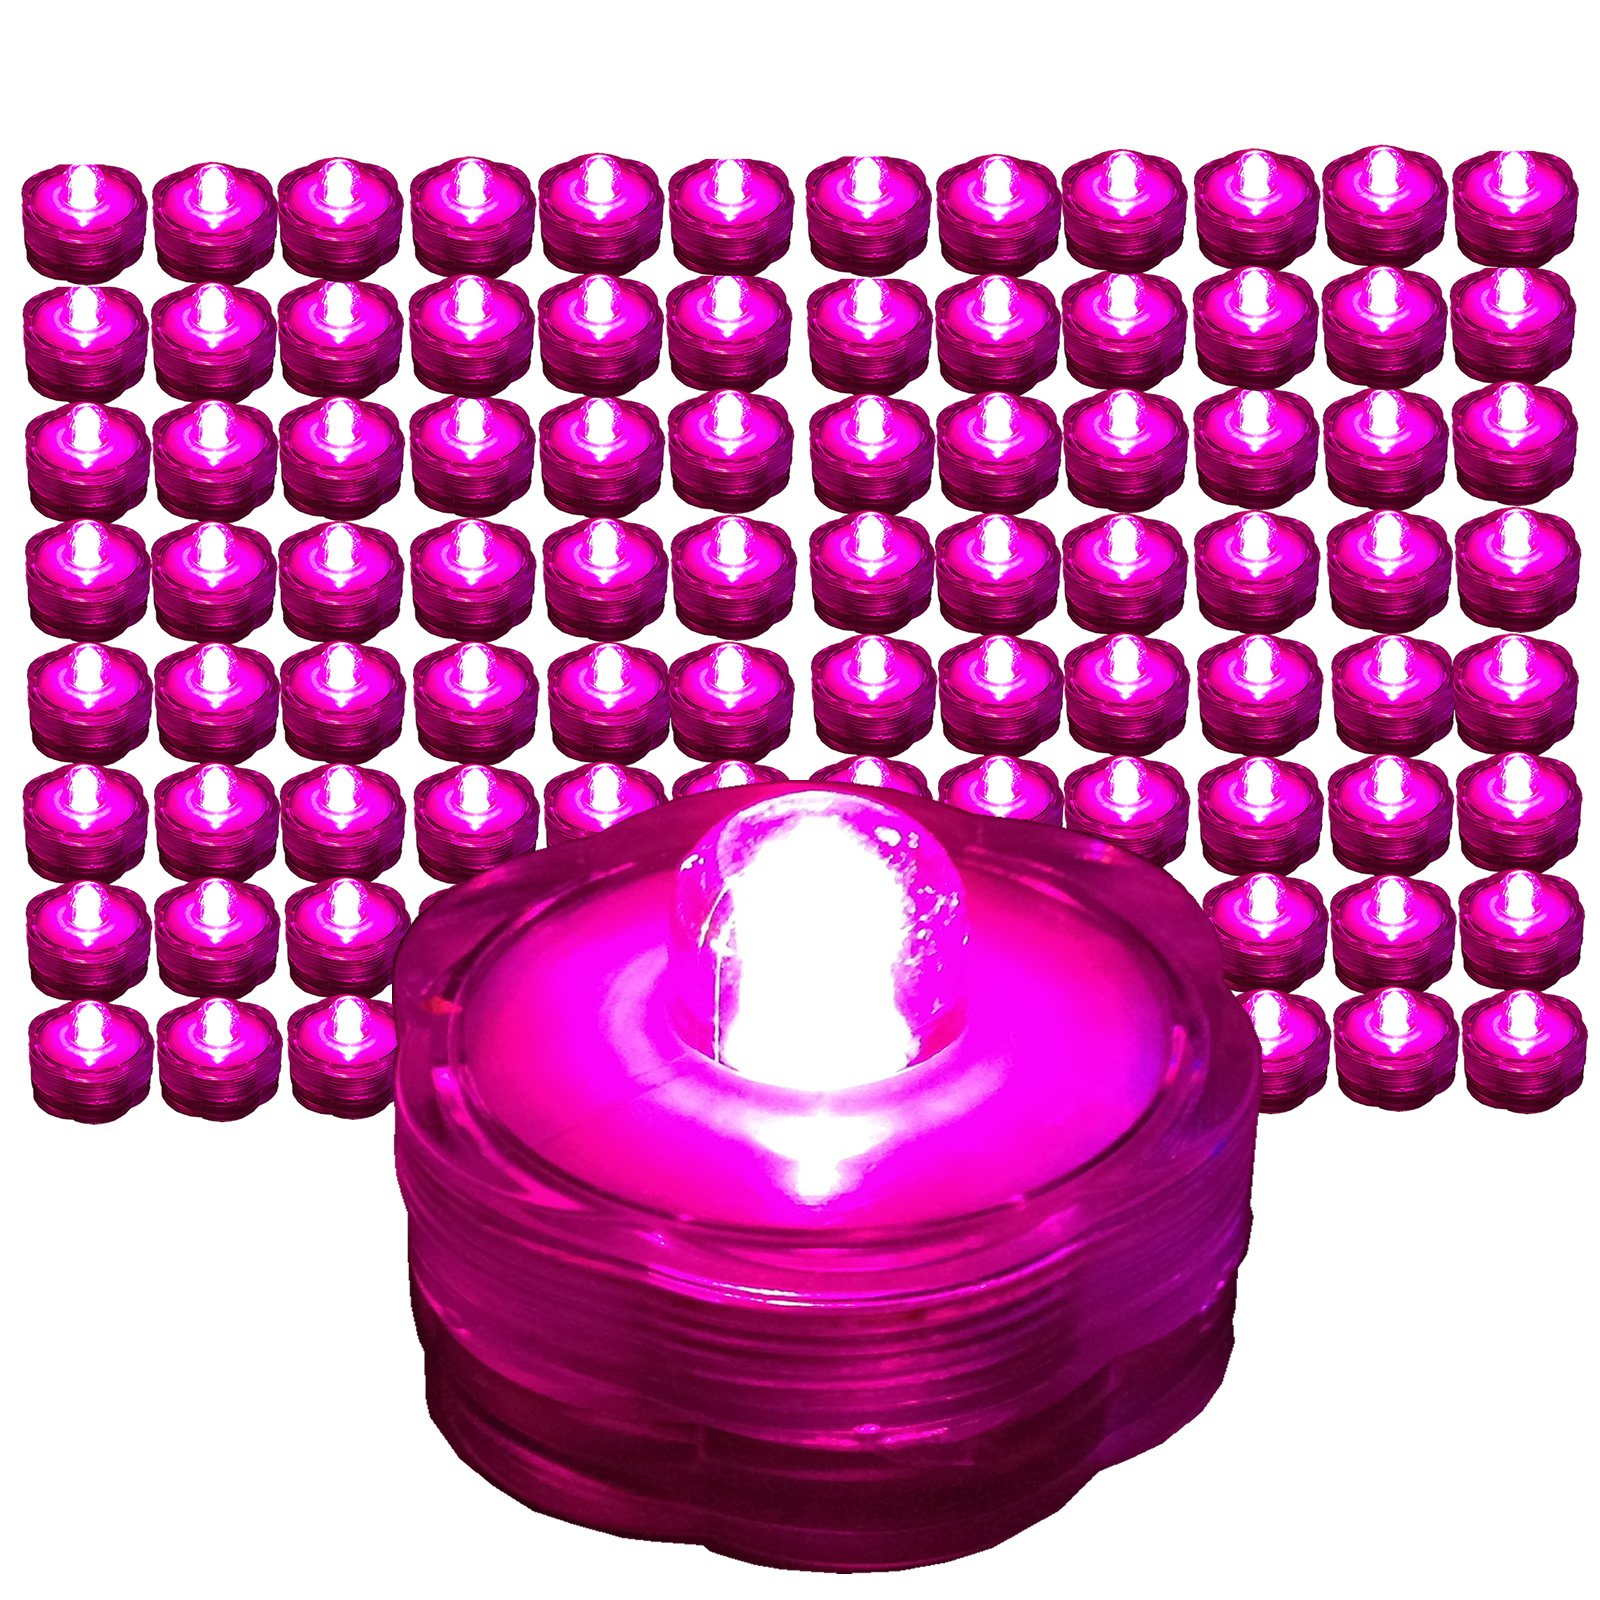 Pack of 96 - Pink - Submersible Waterproof Underwater Tea Light Sub Lights Battery Operated LED TeaLight ~ Wedding Centerpieces, Decor~ BlueDot Trading